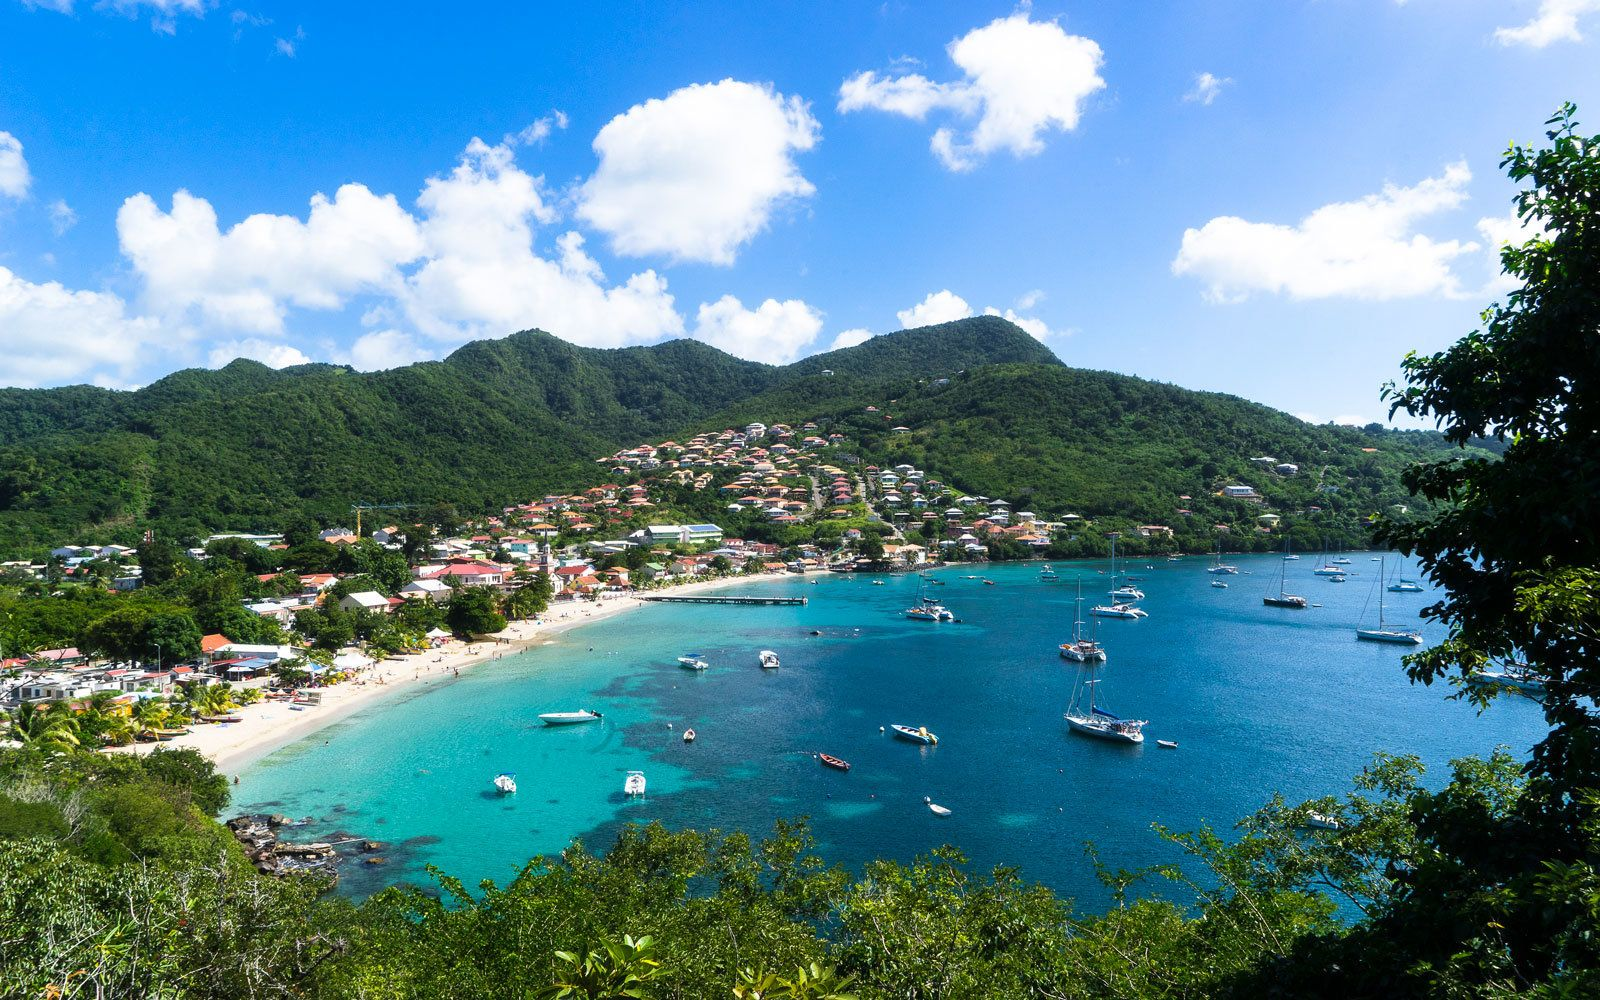 Book Your Dream Caribbean Getaway for As Little As 209